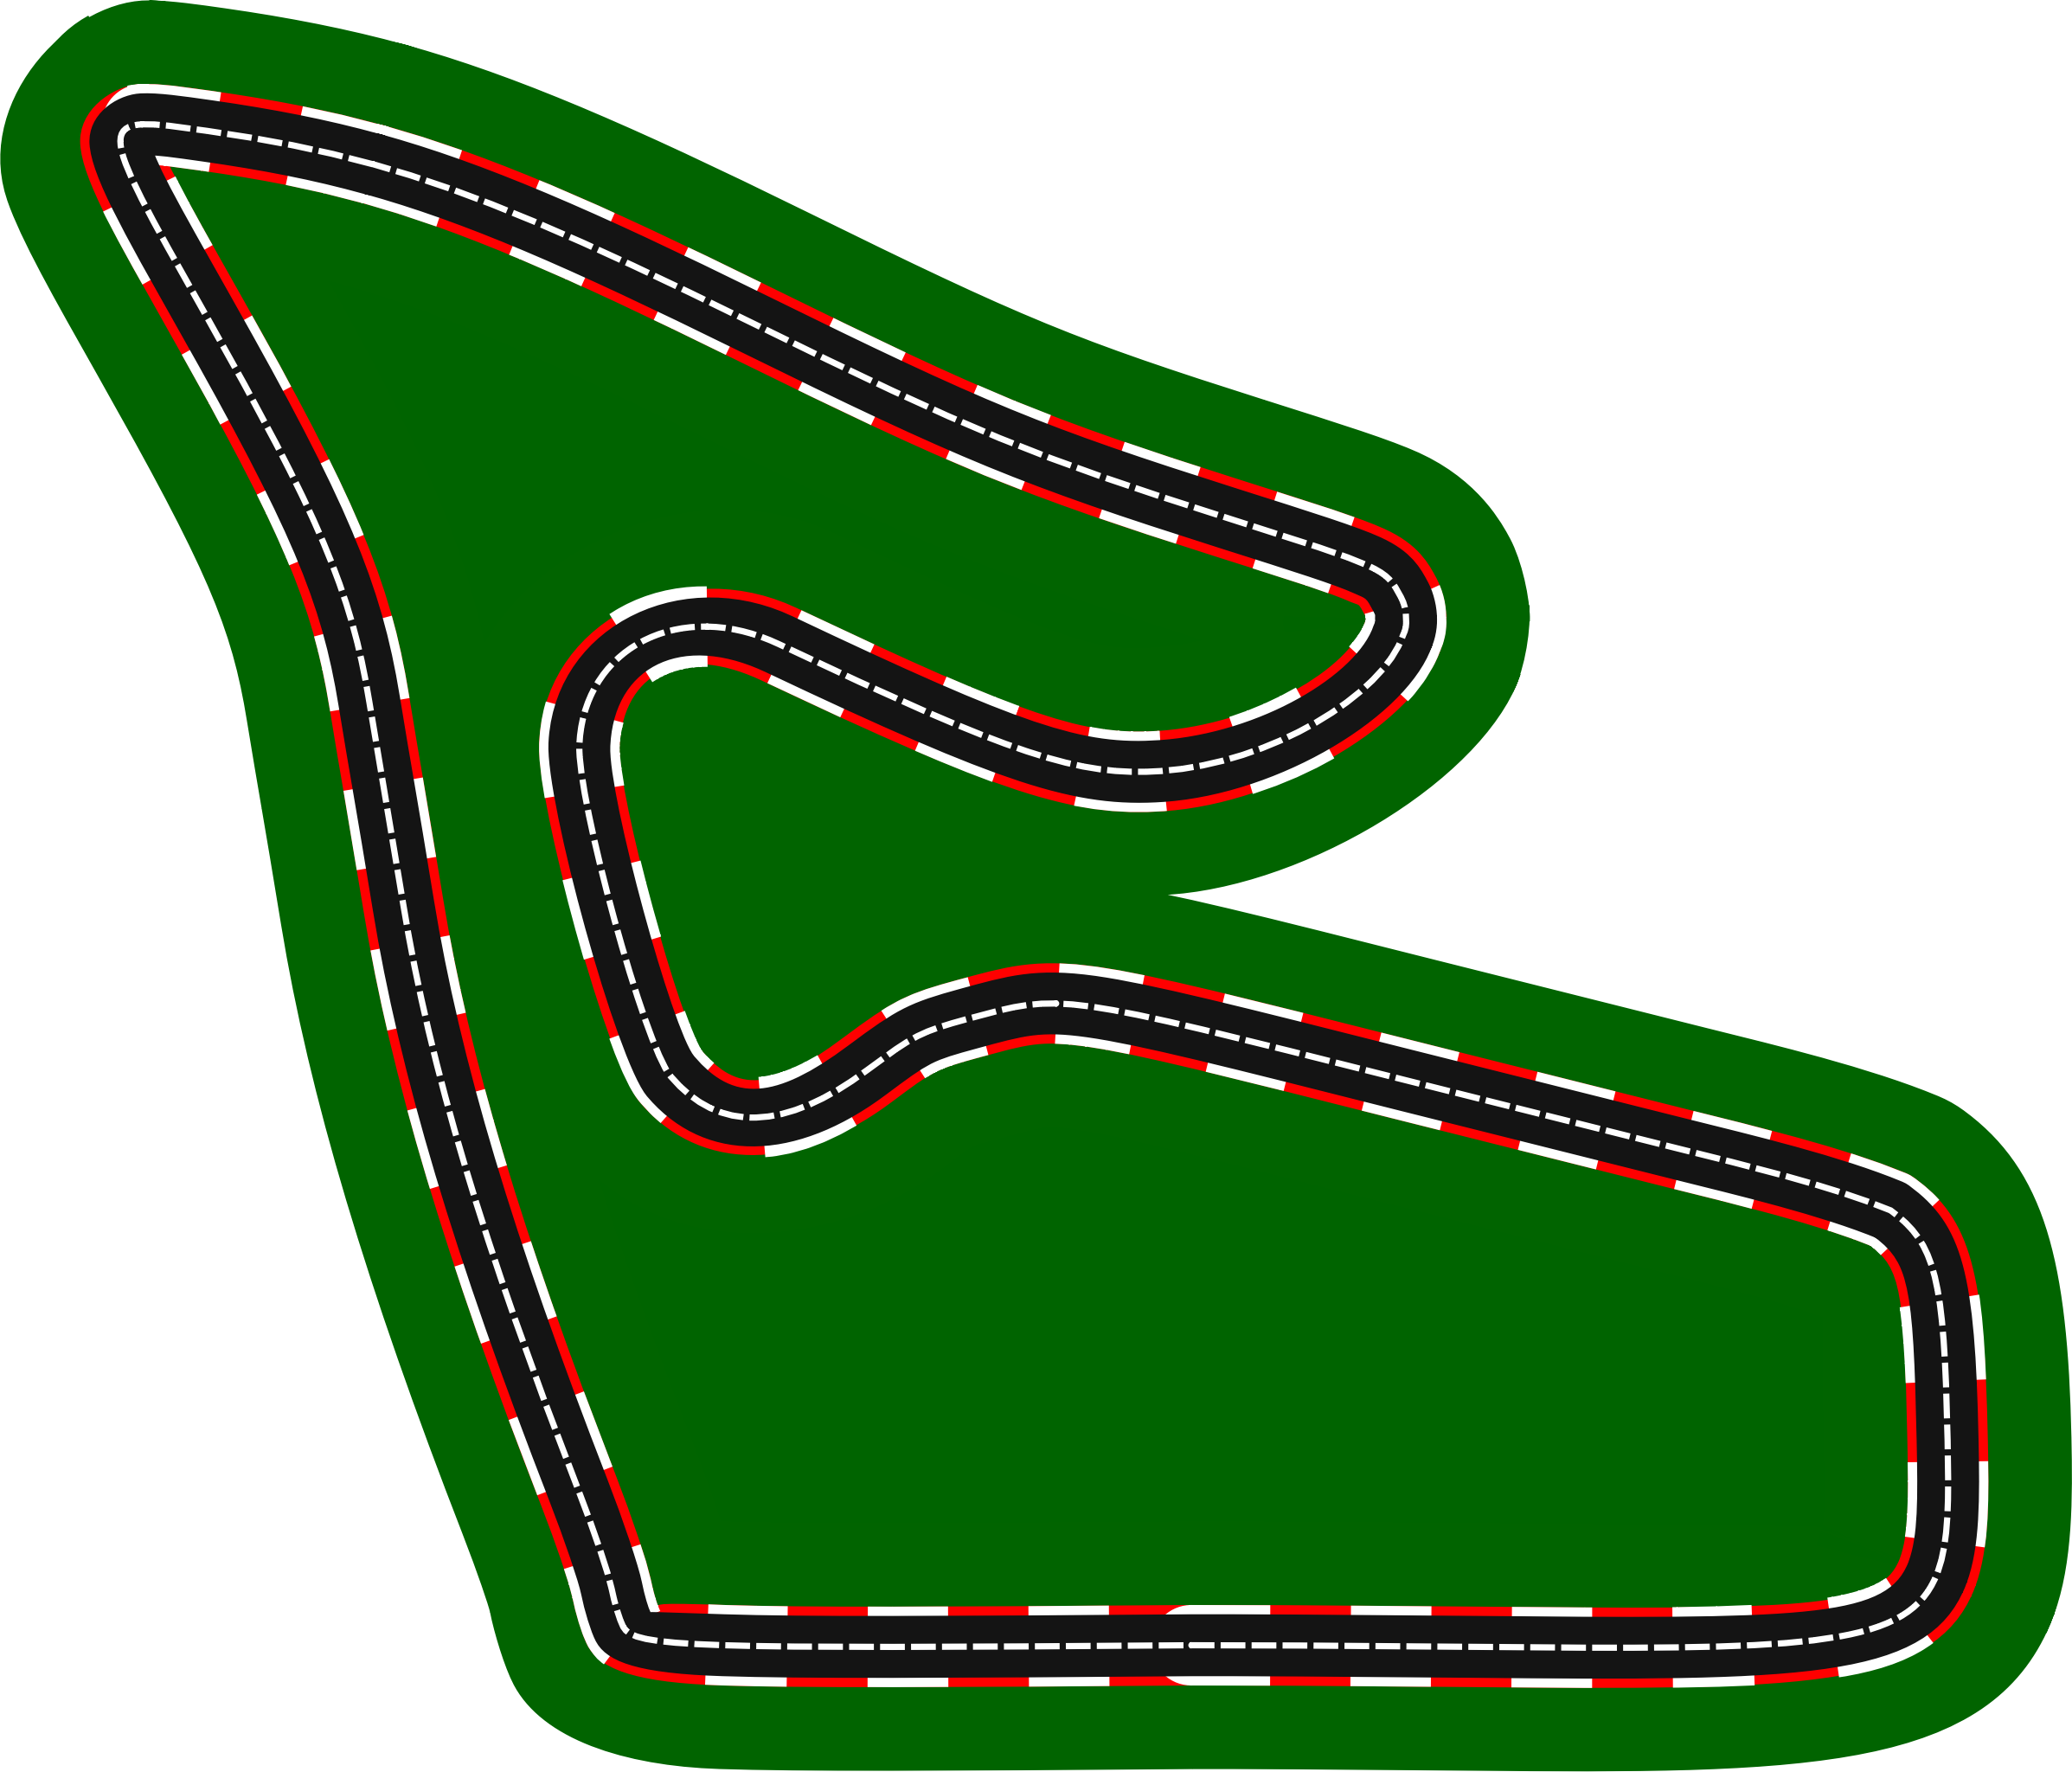 Car race track clipart jpg free Clipart - F1 circuits 2014-2018 - Red Bull Ring jpg free